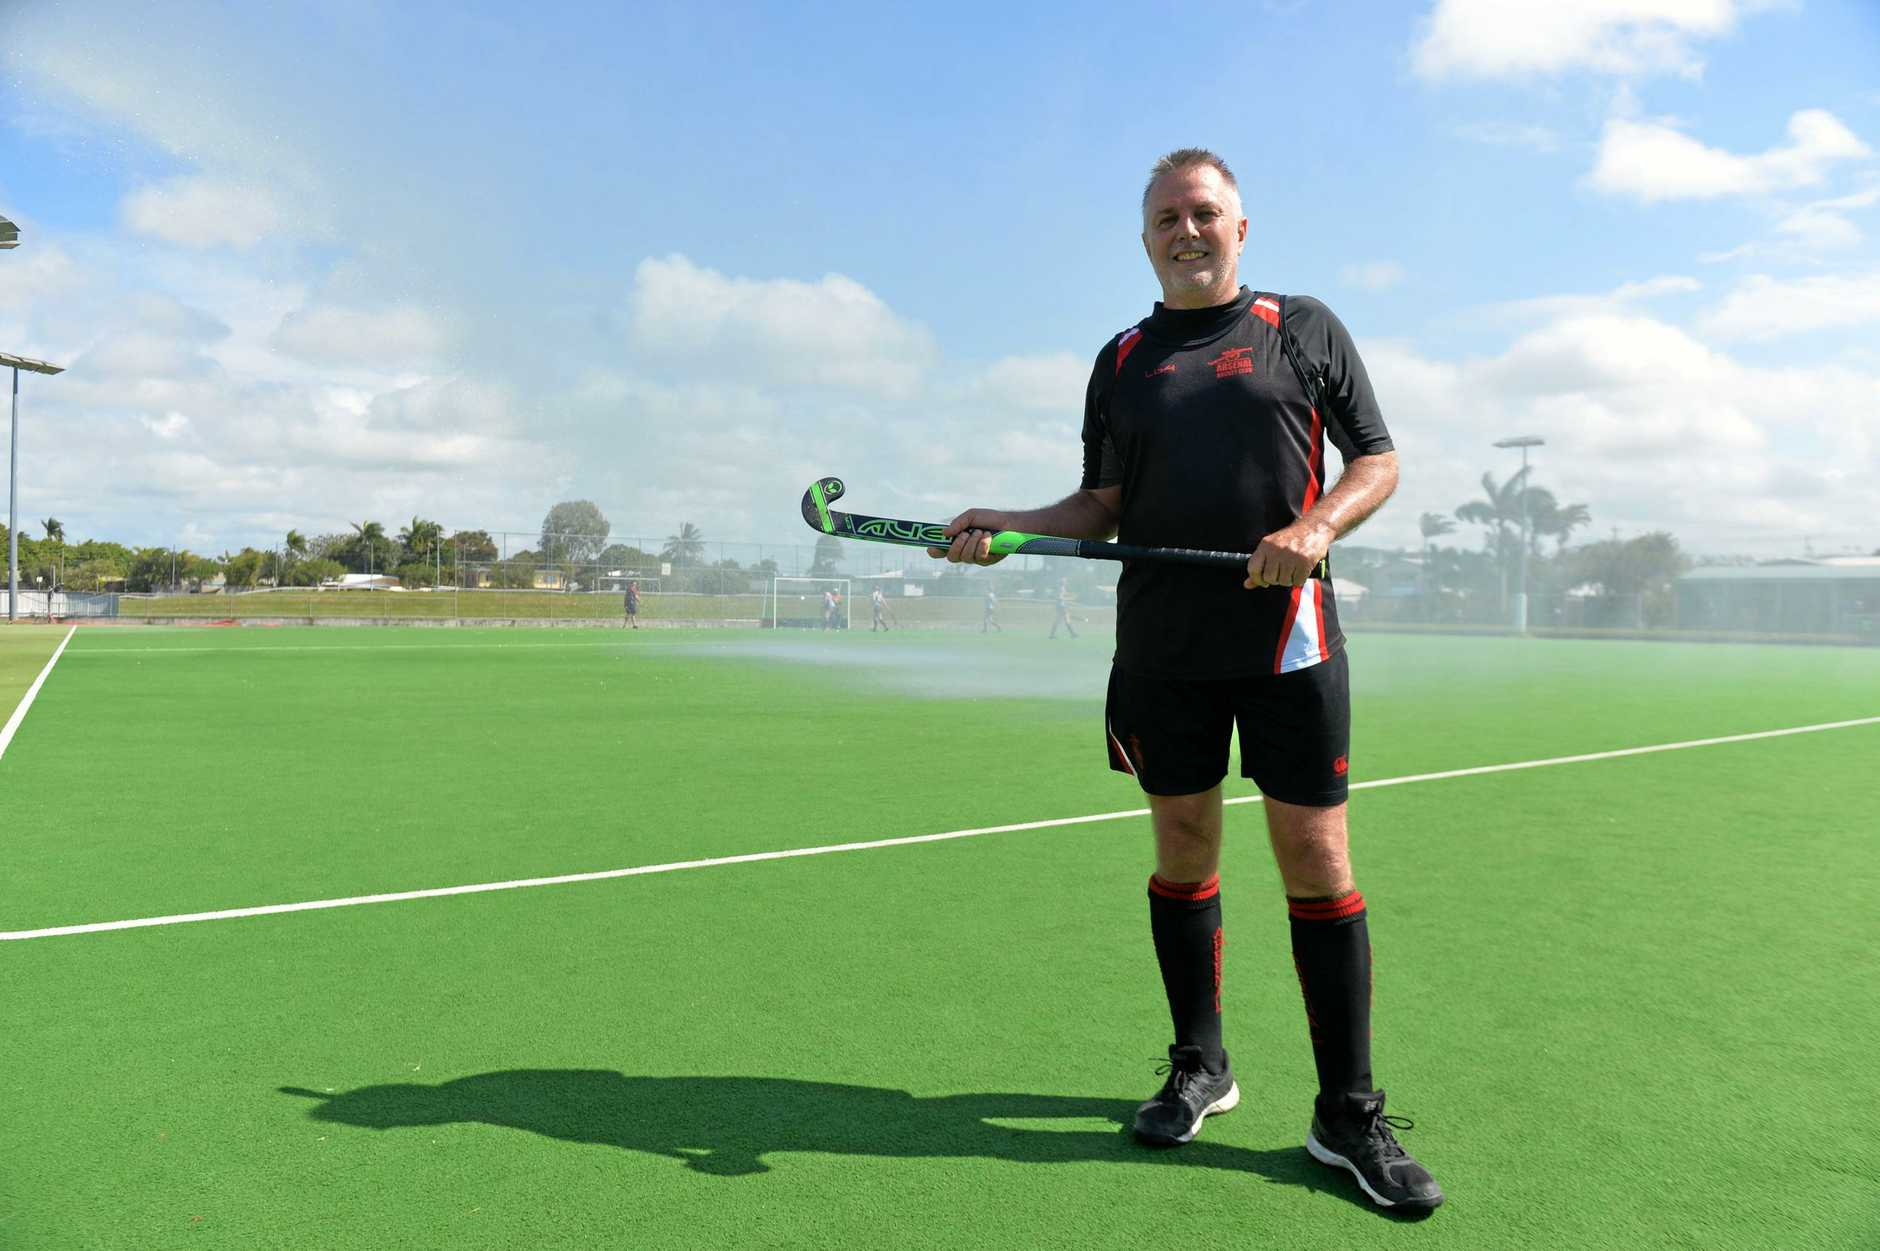 Bill Mackay reached 1000 games for Arsenals hockey club.  2019 was his 41st consecutive year playing for Arsenal (started in 1979) and also Mackay Hockey Association